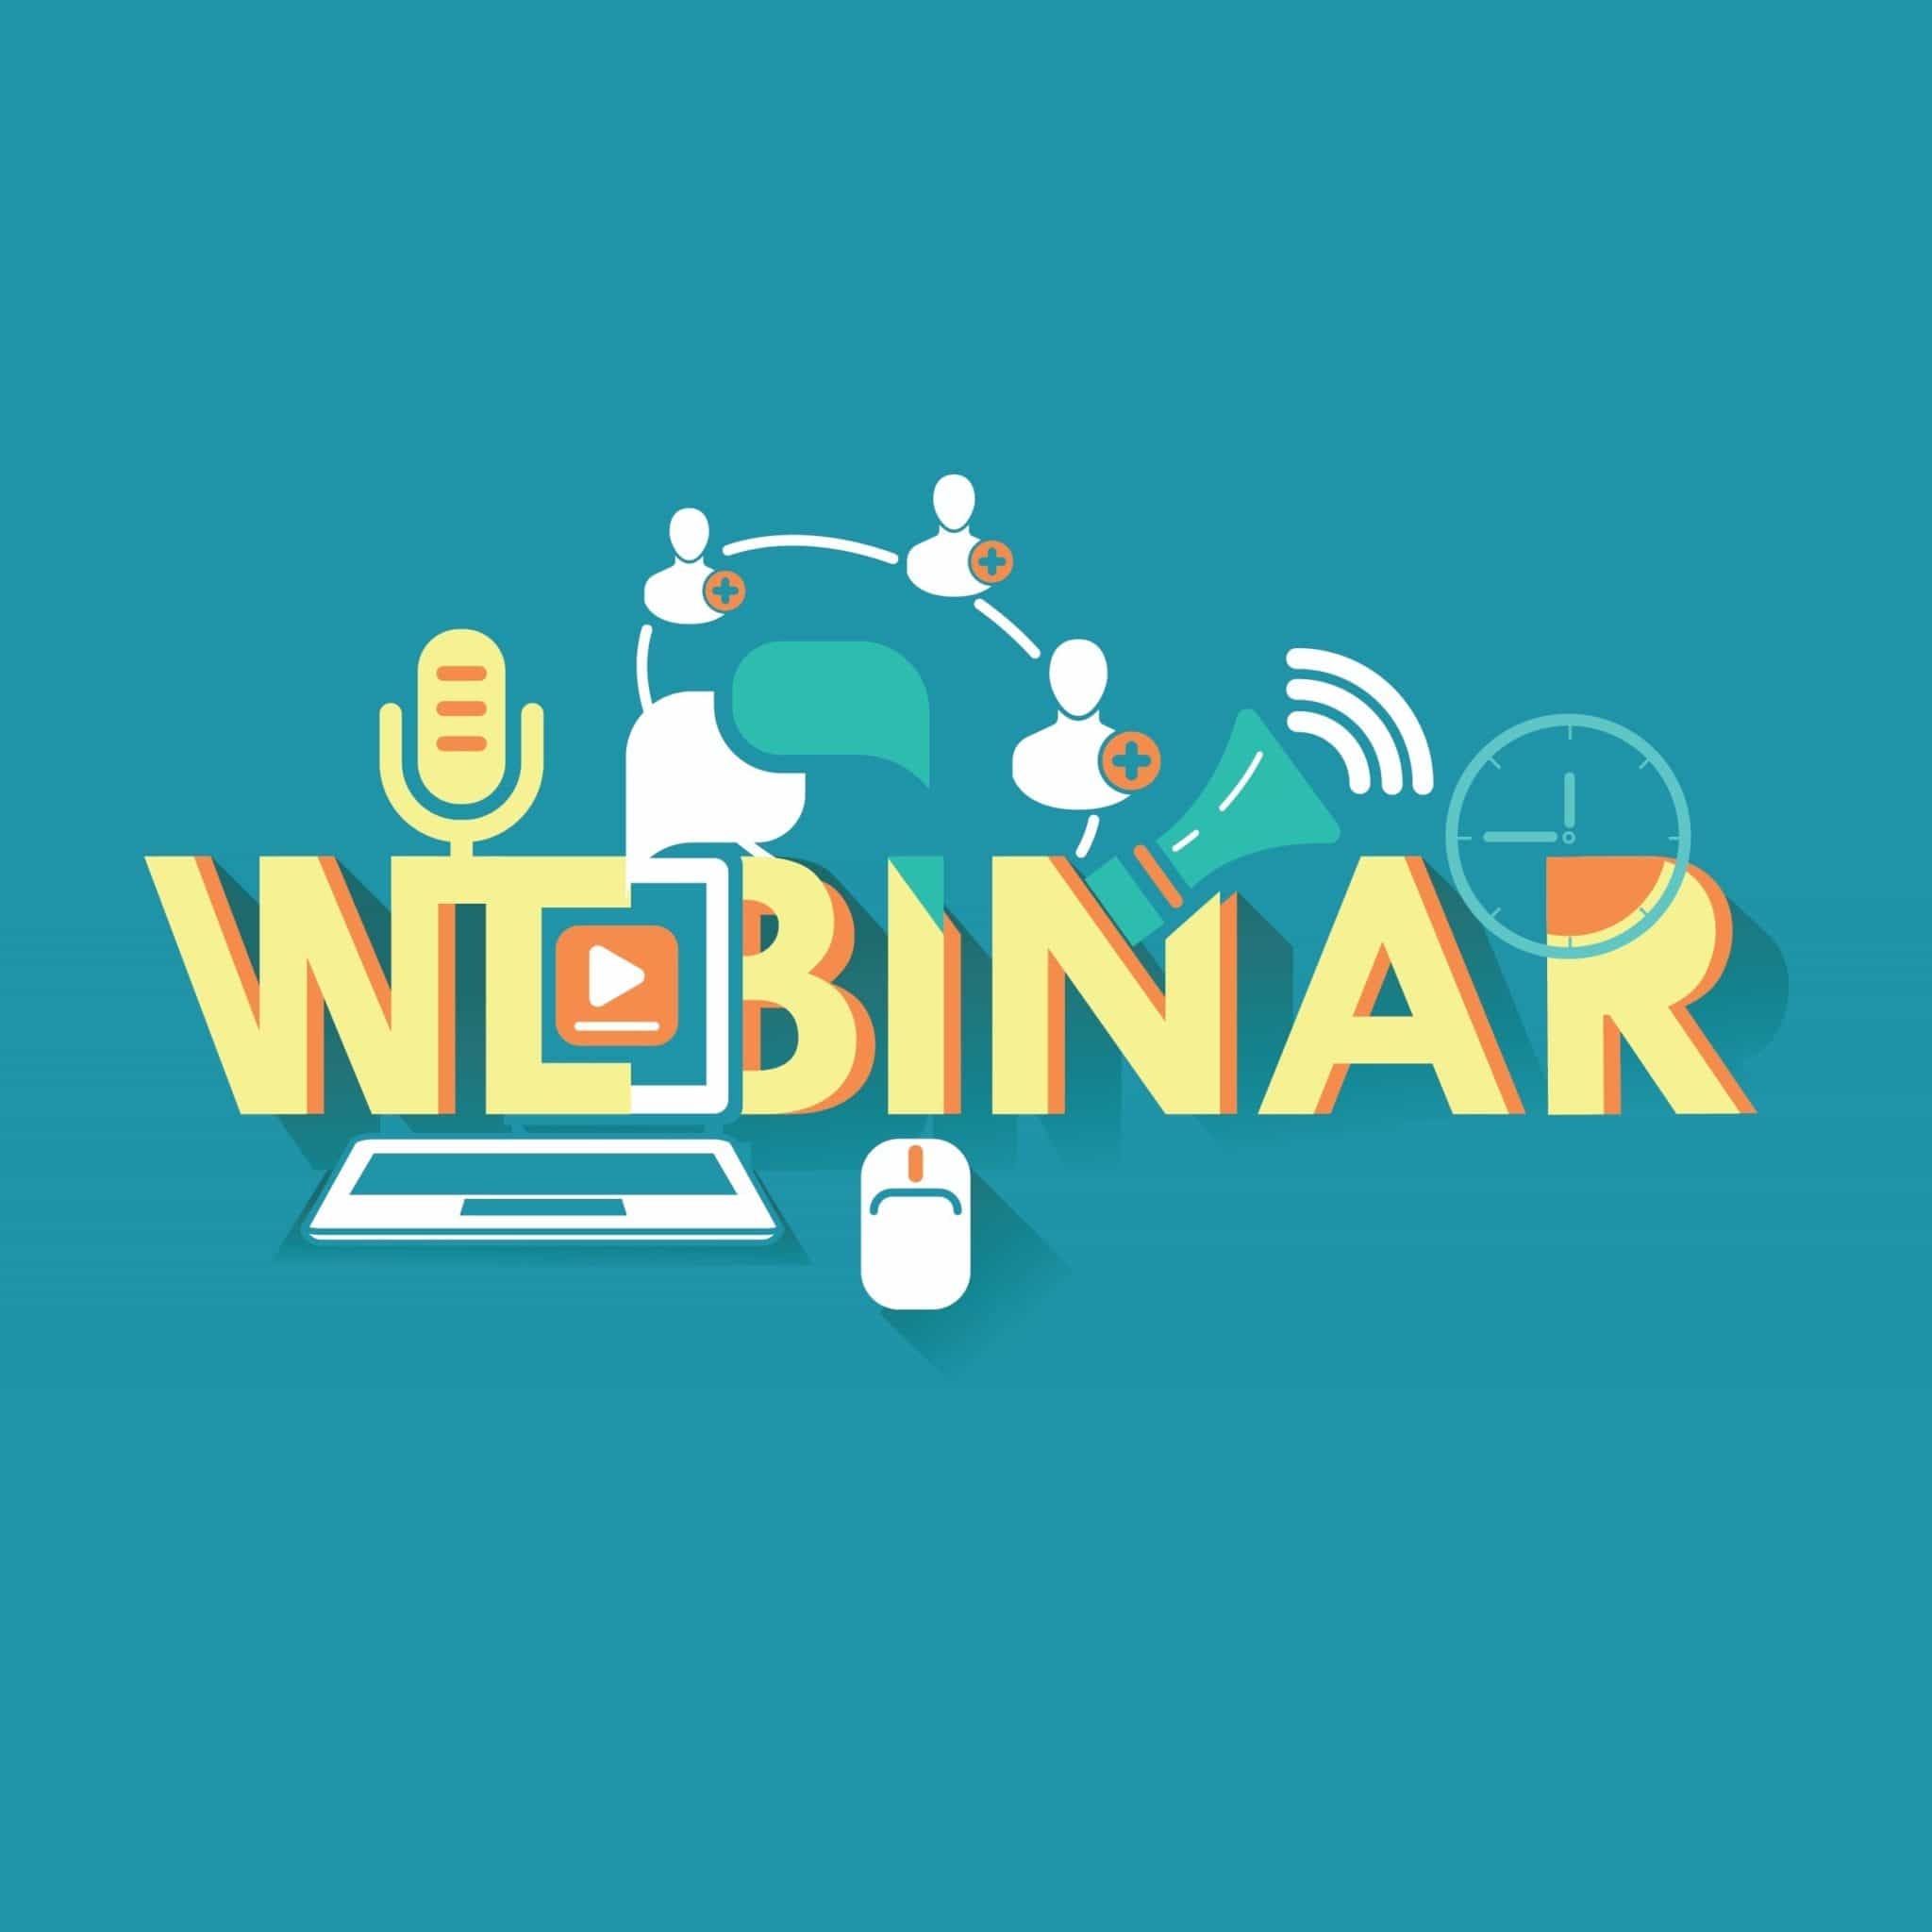 upcoming work comp claims webinar is one for the calendar